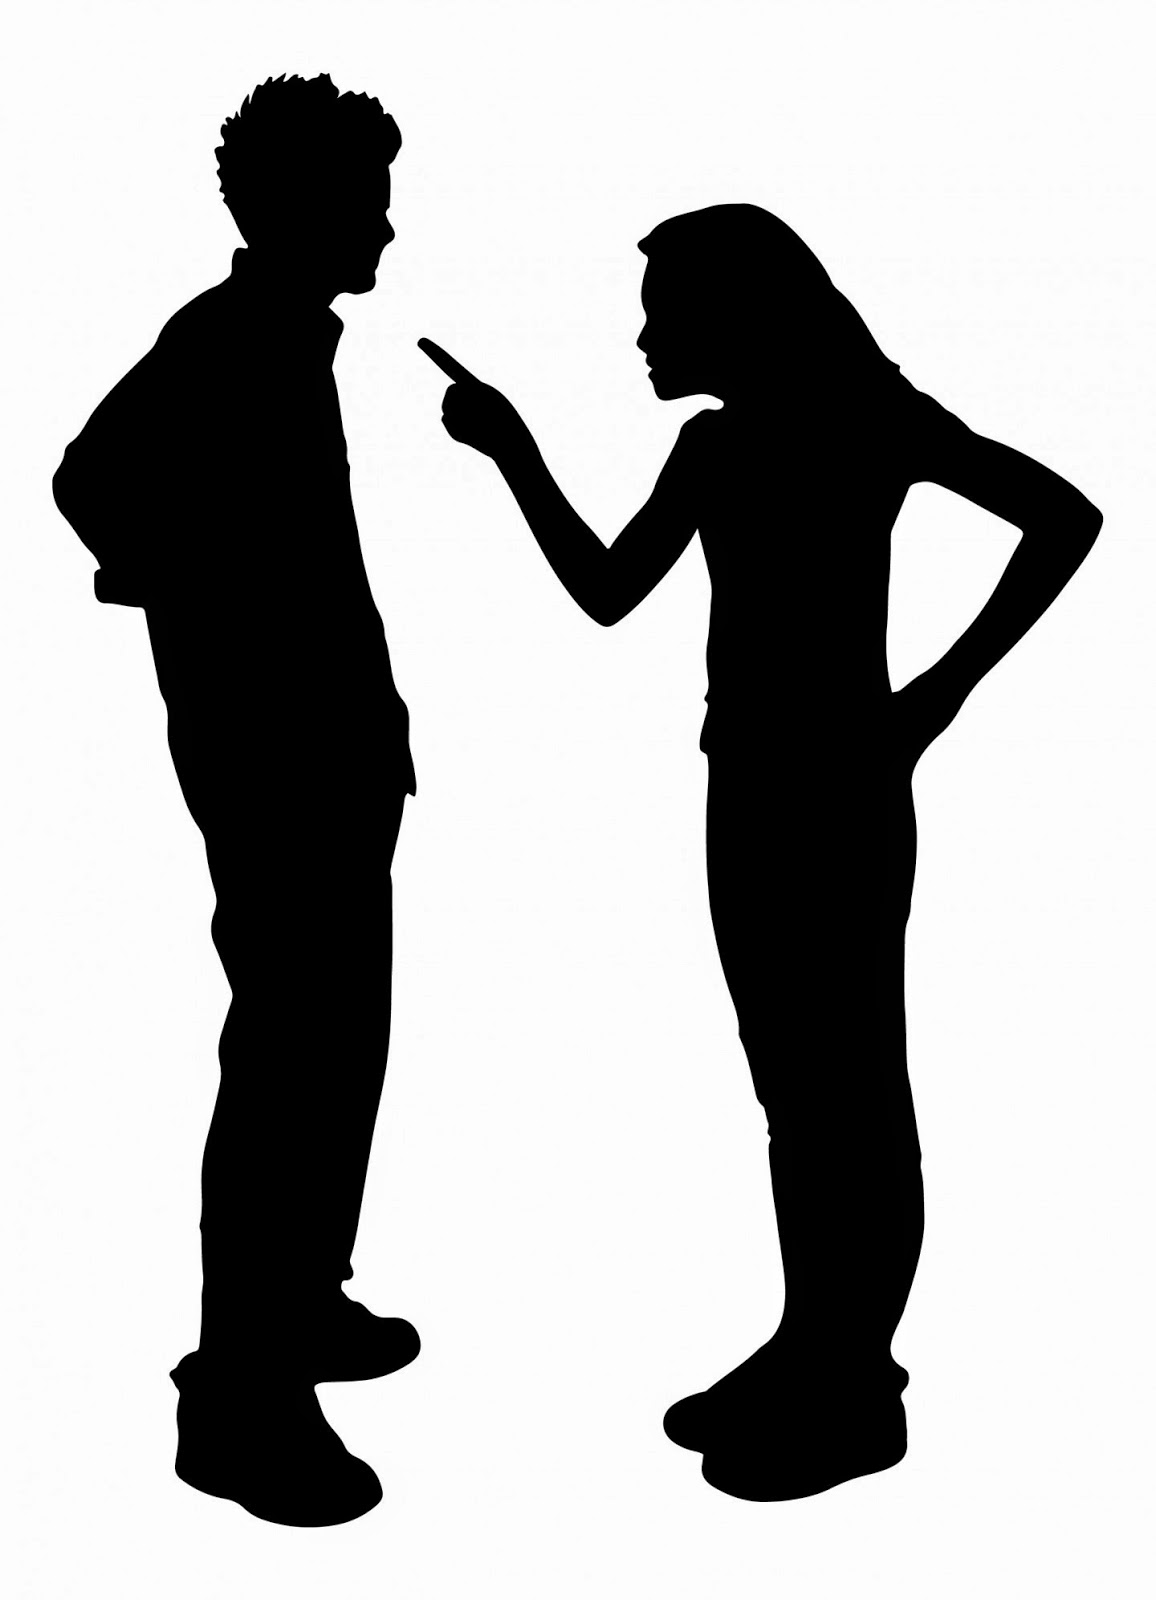 Zipper black and white clipart images amp pictures becuo - Be Careful How You Argue With Your Spouse Your Kids Are Watching